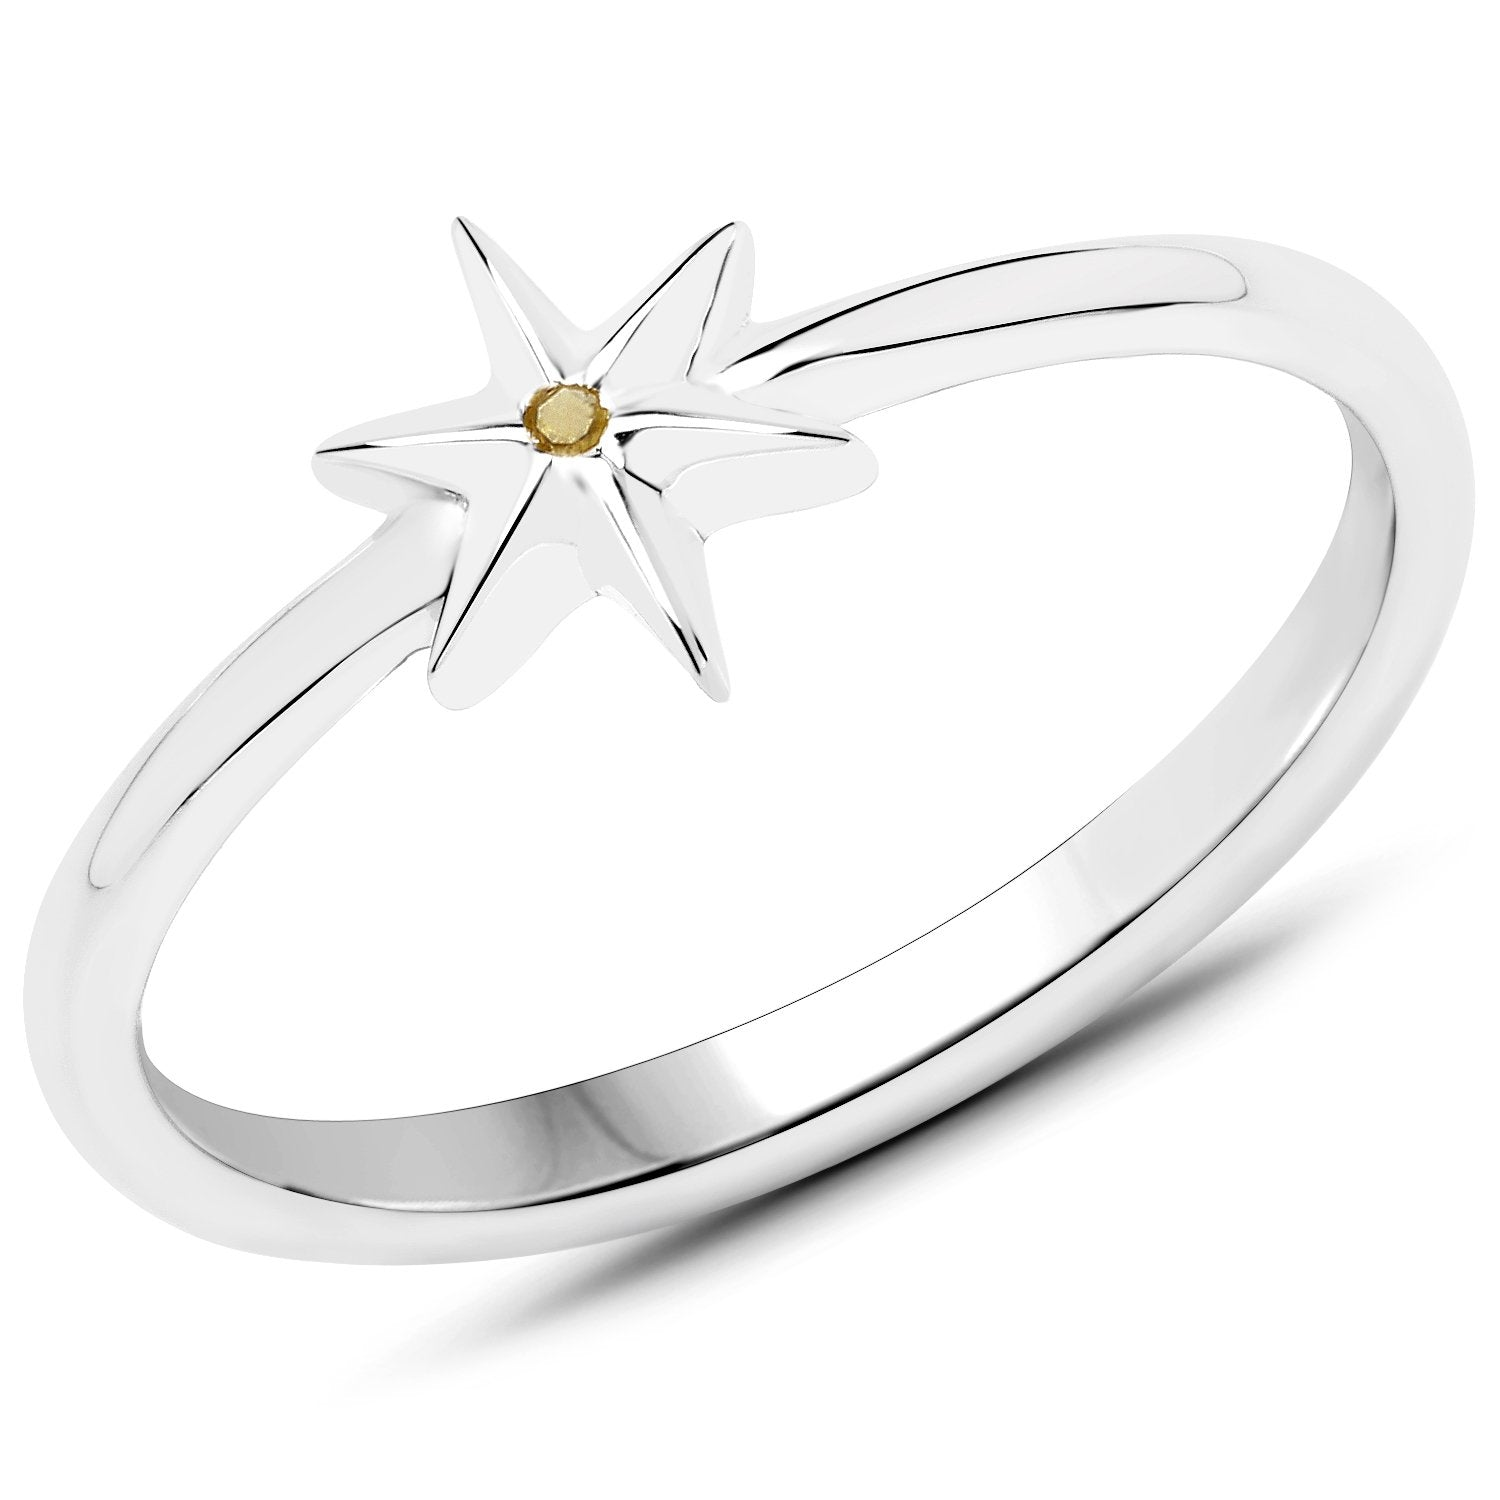 LoveHuang 0.01 Carats Genuine Yellow Diamond (I-J, I2-I3) Star Ring Solid .925 Sterling Silver With Rhodium Plating